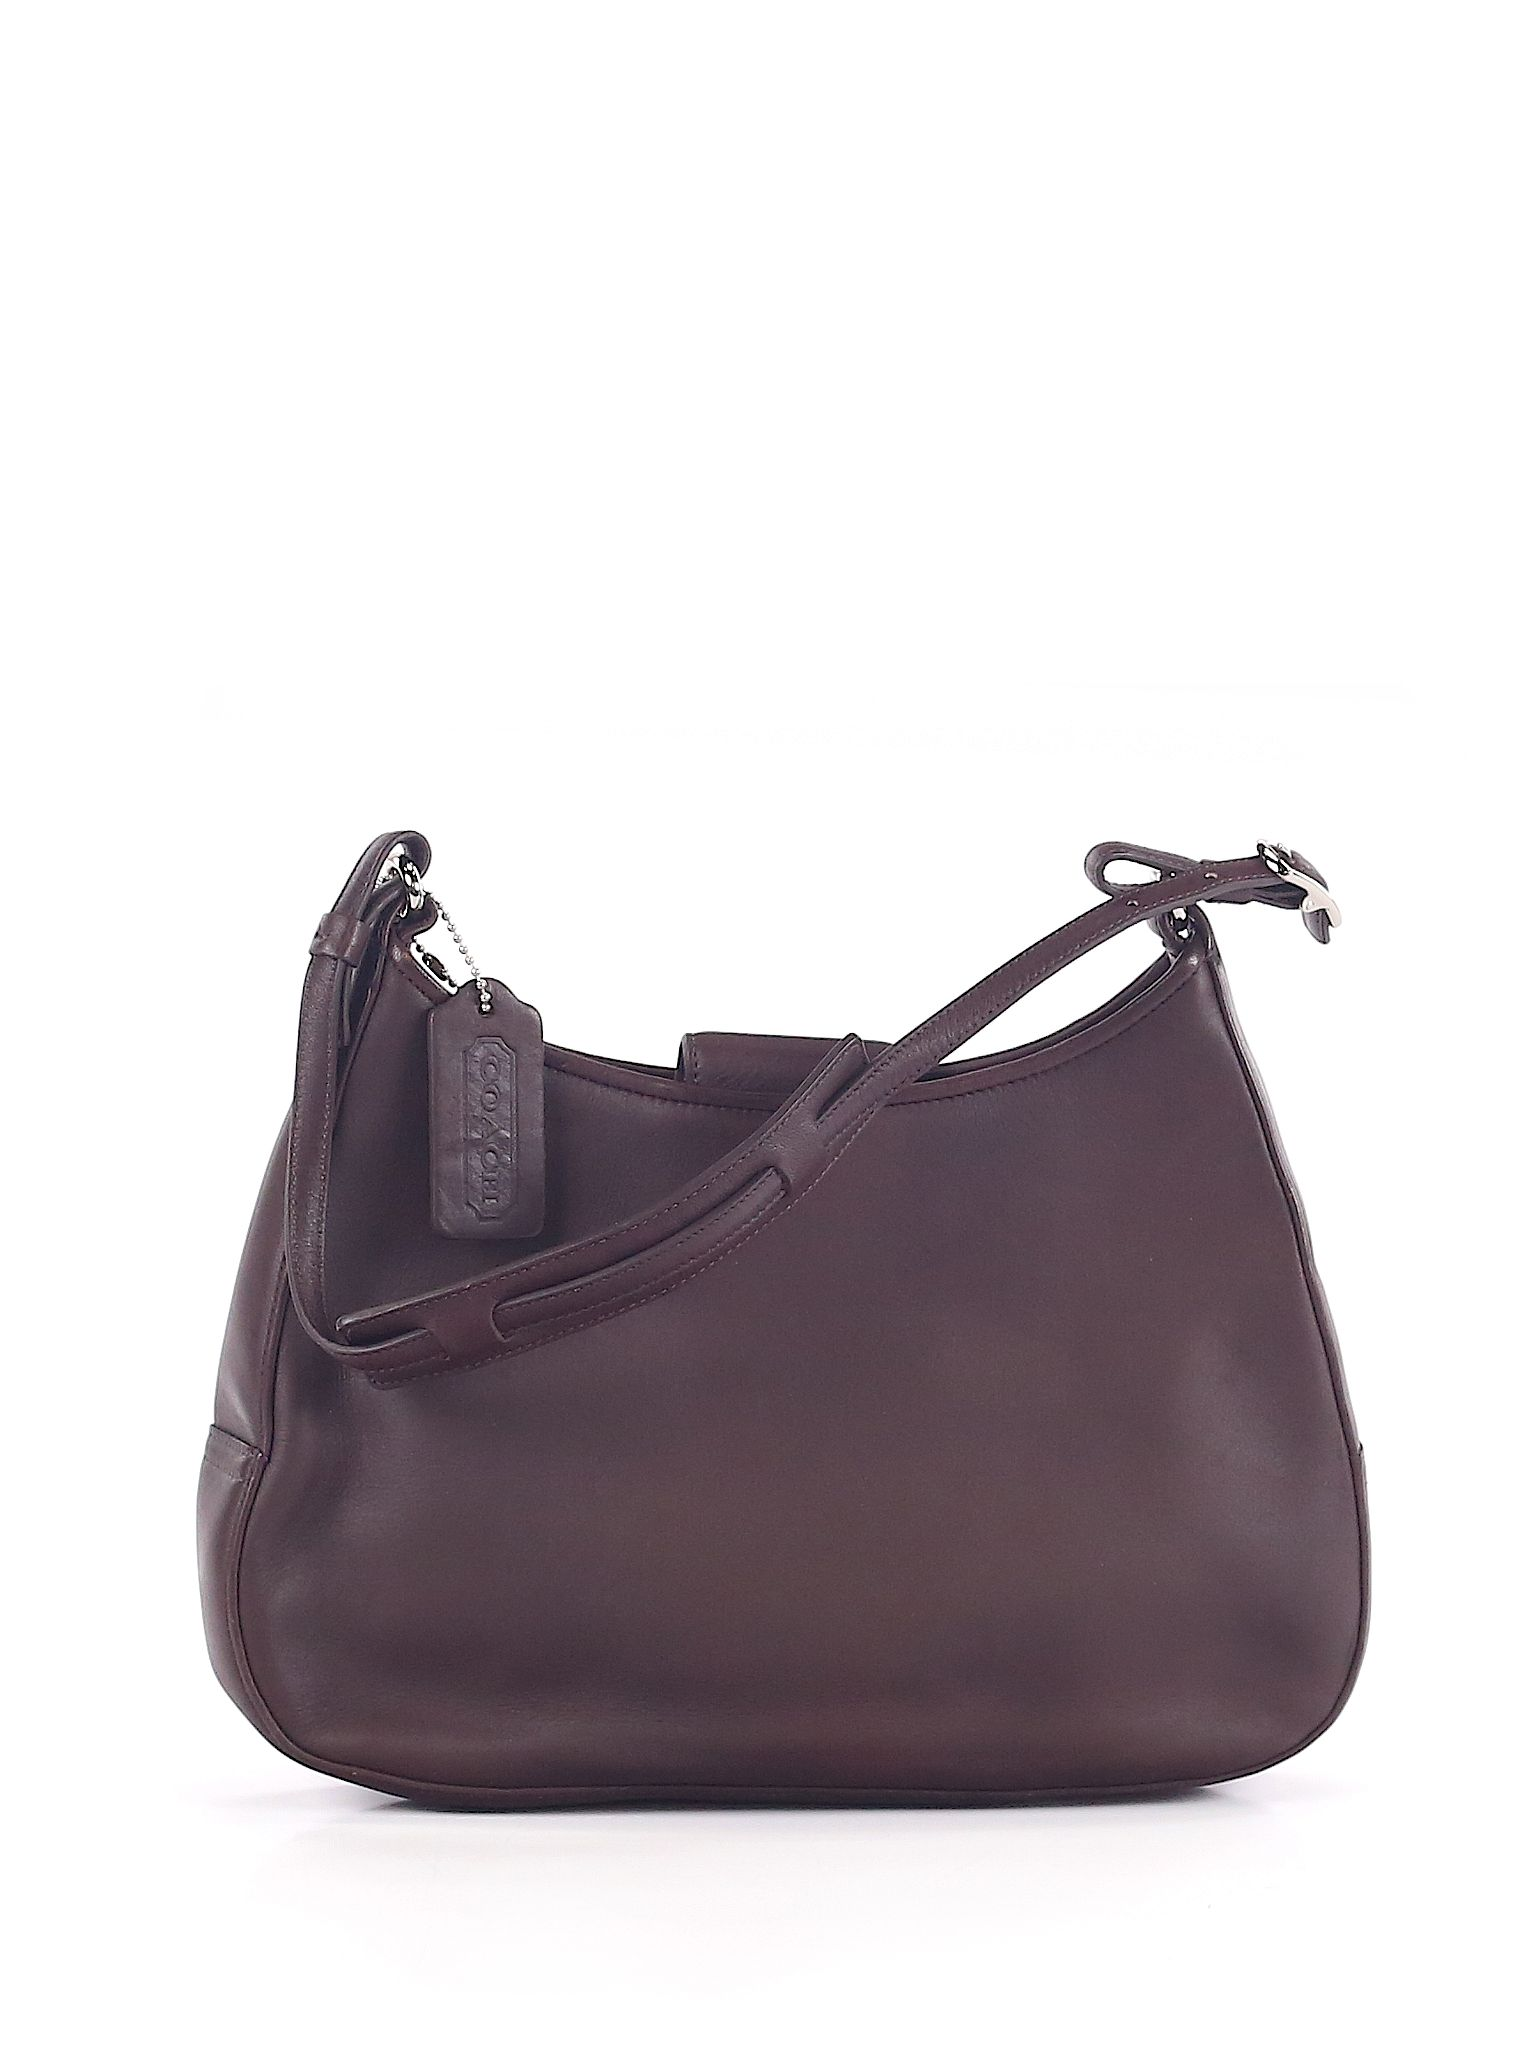 Coach Leather Shoulder Bag Size Na Brown Women S Bags 148 99